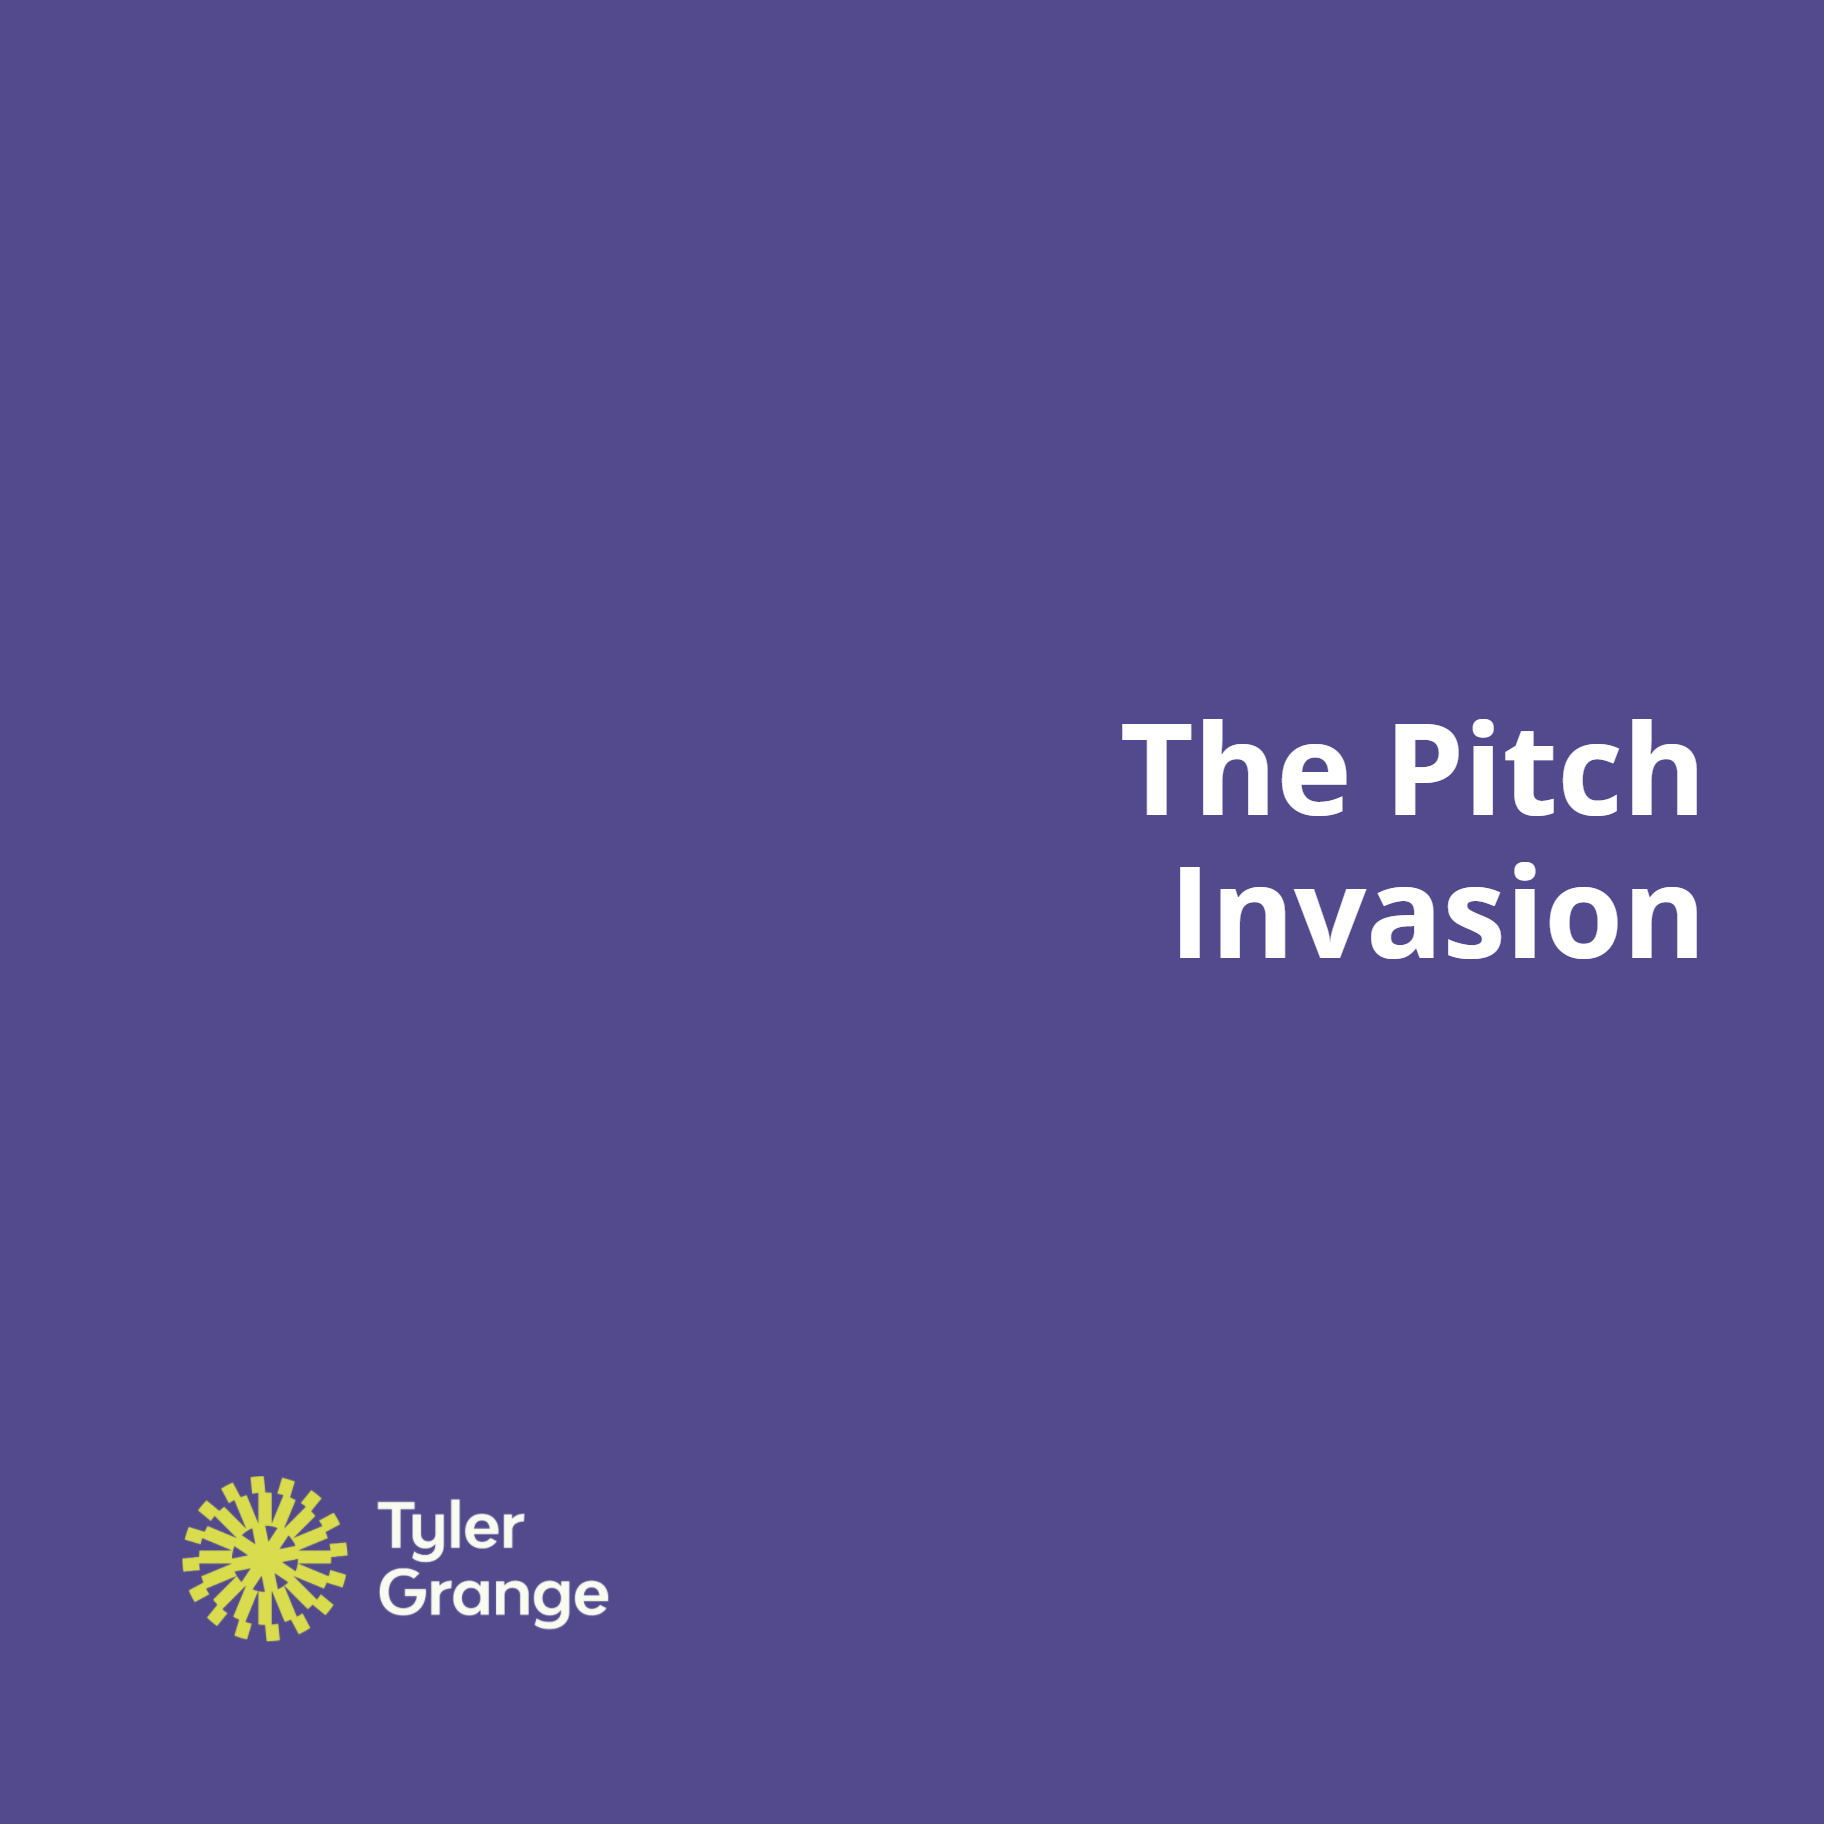 The Pitch Invasion